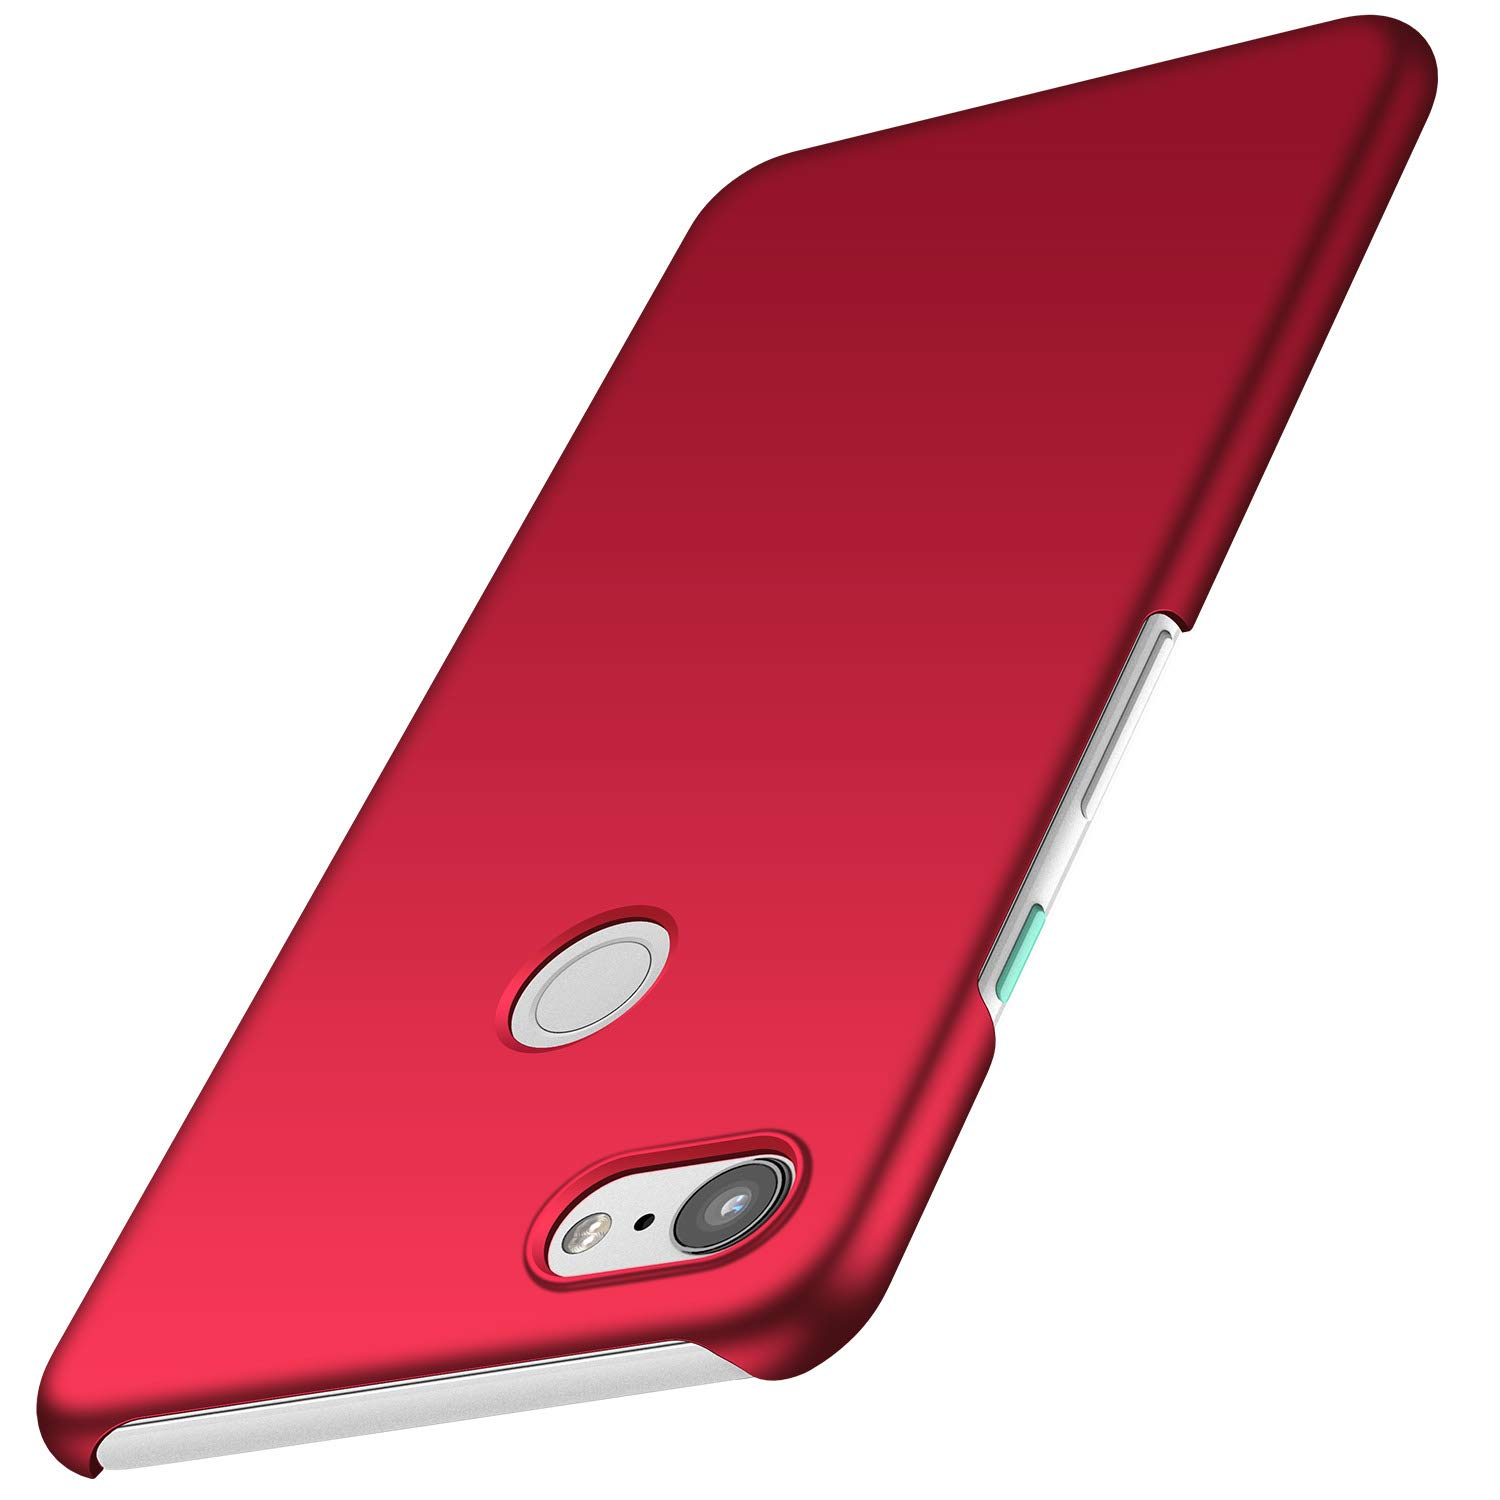 Anccer Colorful Series for Google Pixel 3 Case Ultra-Thin Fit Premium PC Material Slim Cover for Google Pixel 3 (Not Fit for Google Pixel 3 XL) (Rose Gold)